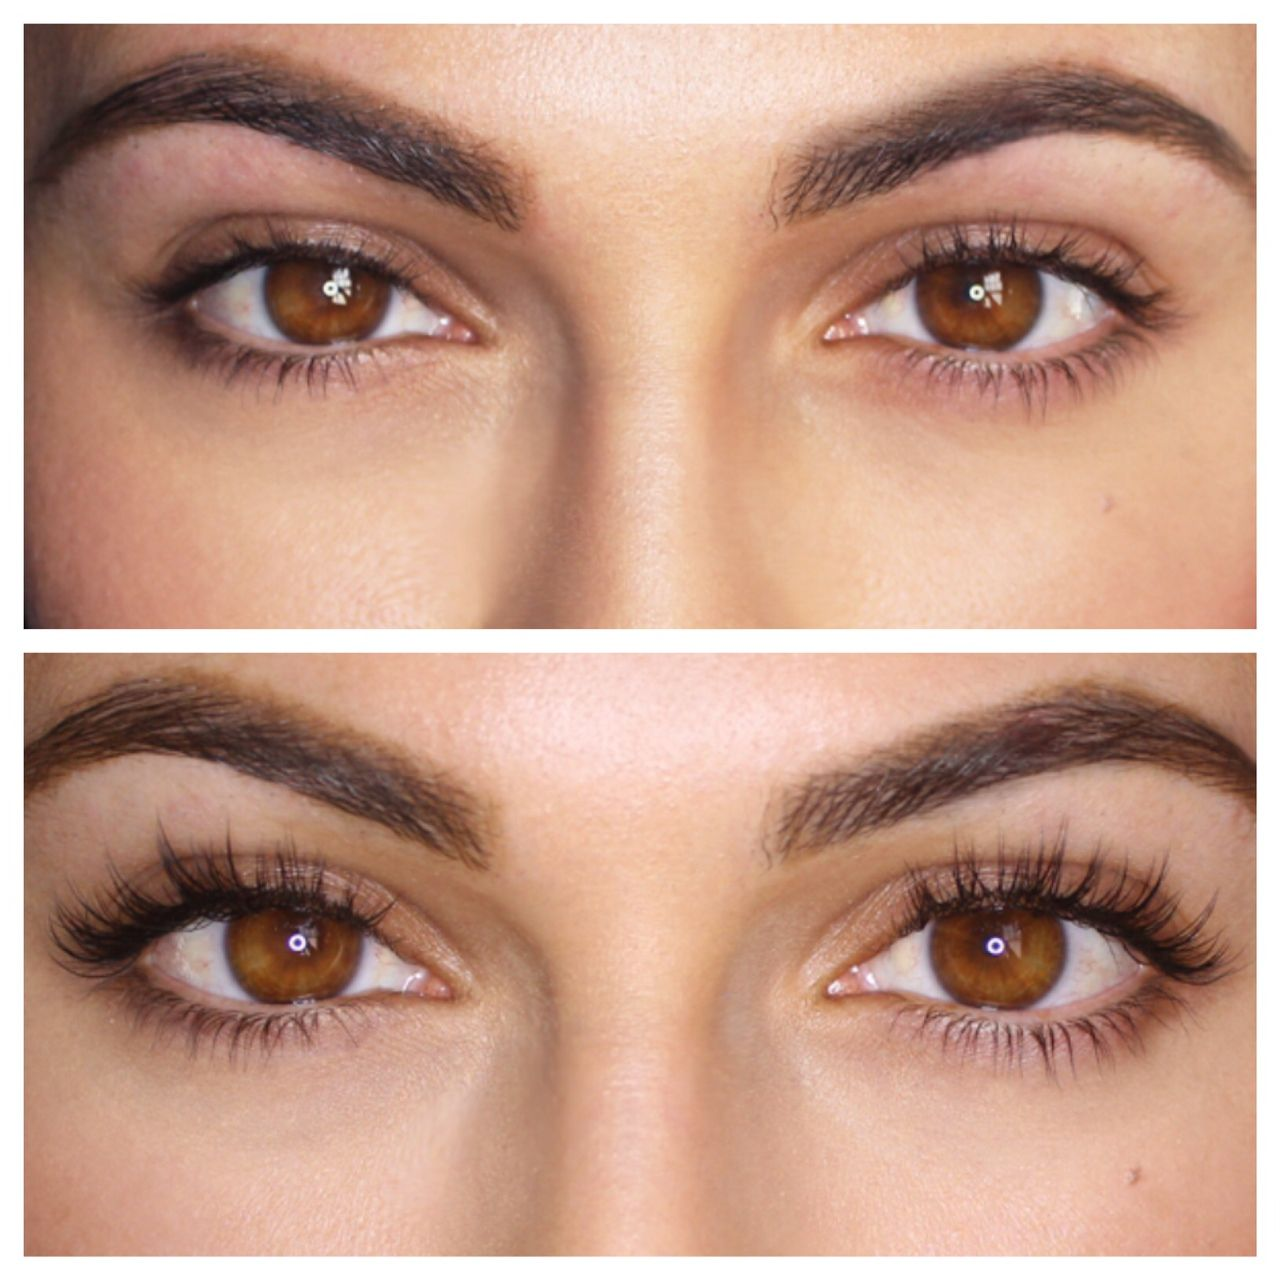 Diy Eyelash Extensions Lash Extensions Before And After Makeup Ideas Lash